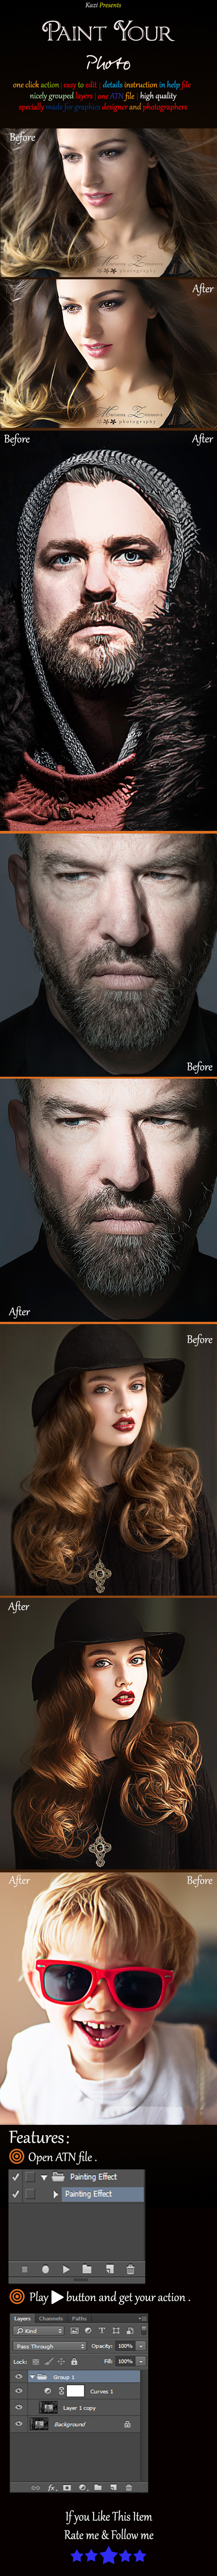 Paint Your Photo - Photo Effects Actions